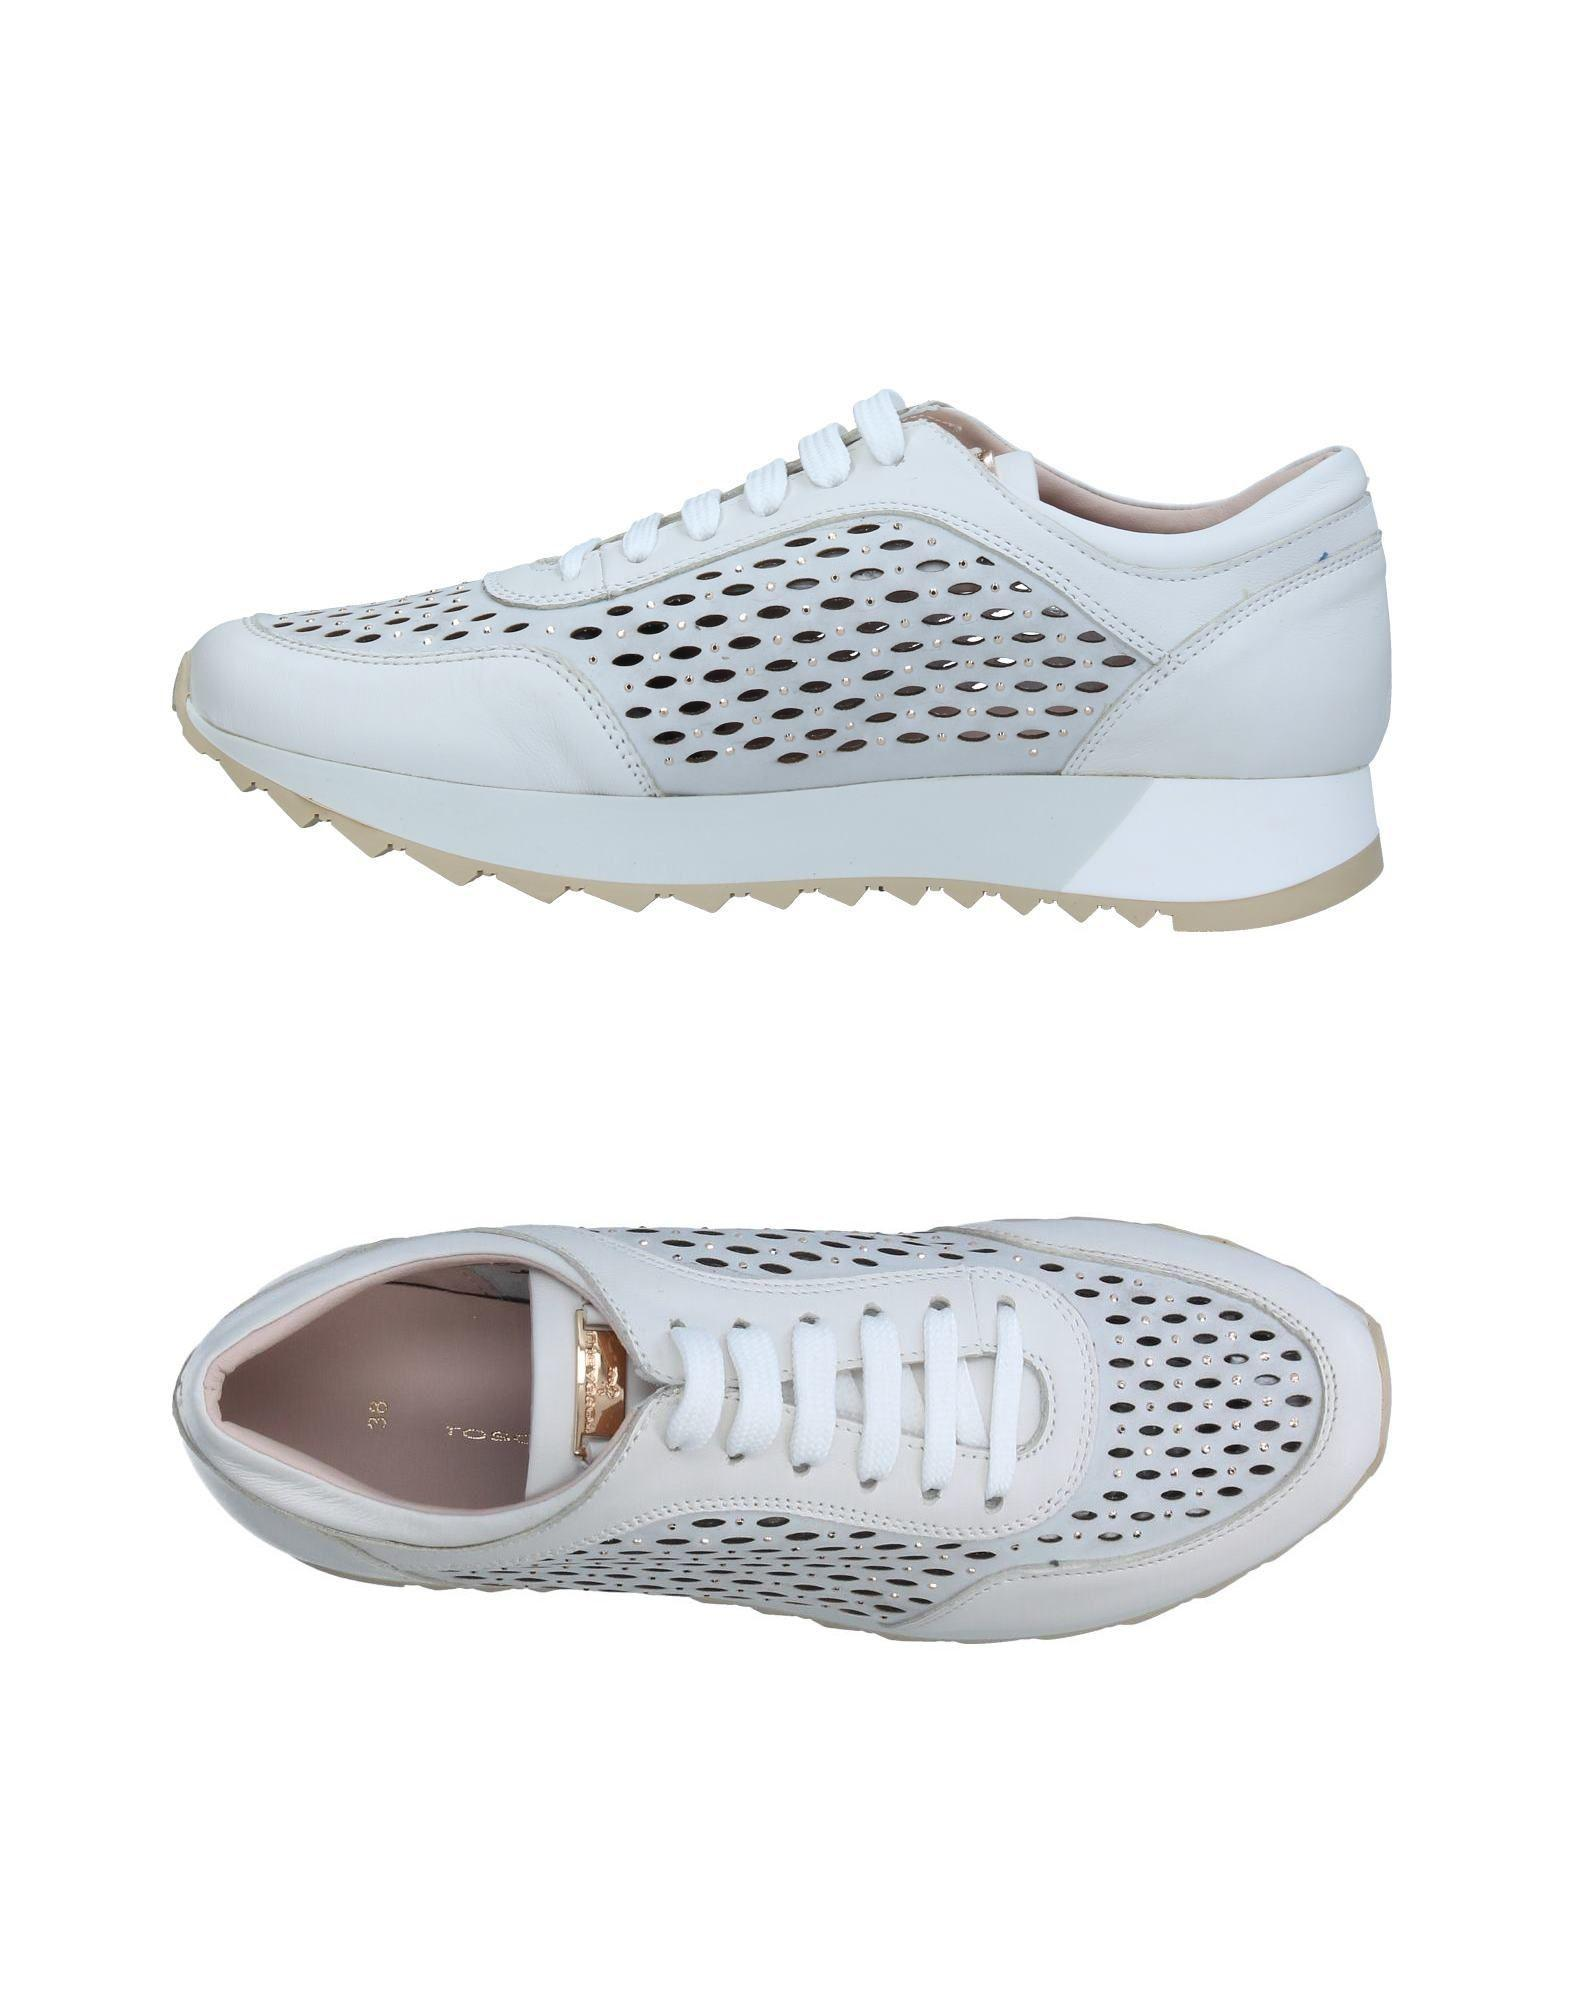 FOOTWEAR - Low-tops & sneakers Tosca Blu Amazing Price Collections Cheap Price Clearance Order Outlet Largest Supplier ckyXAc3GP